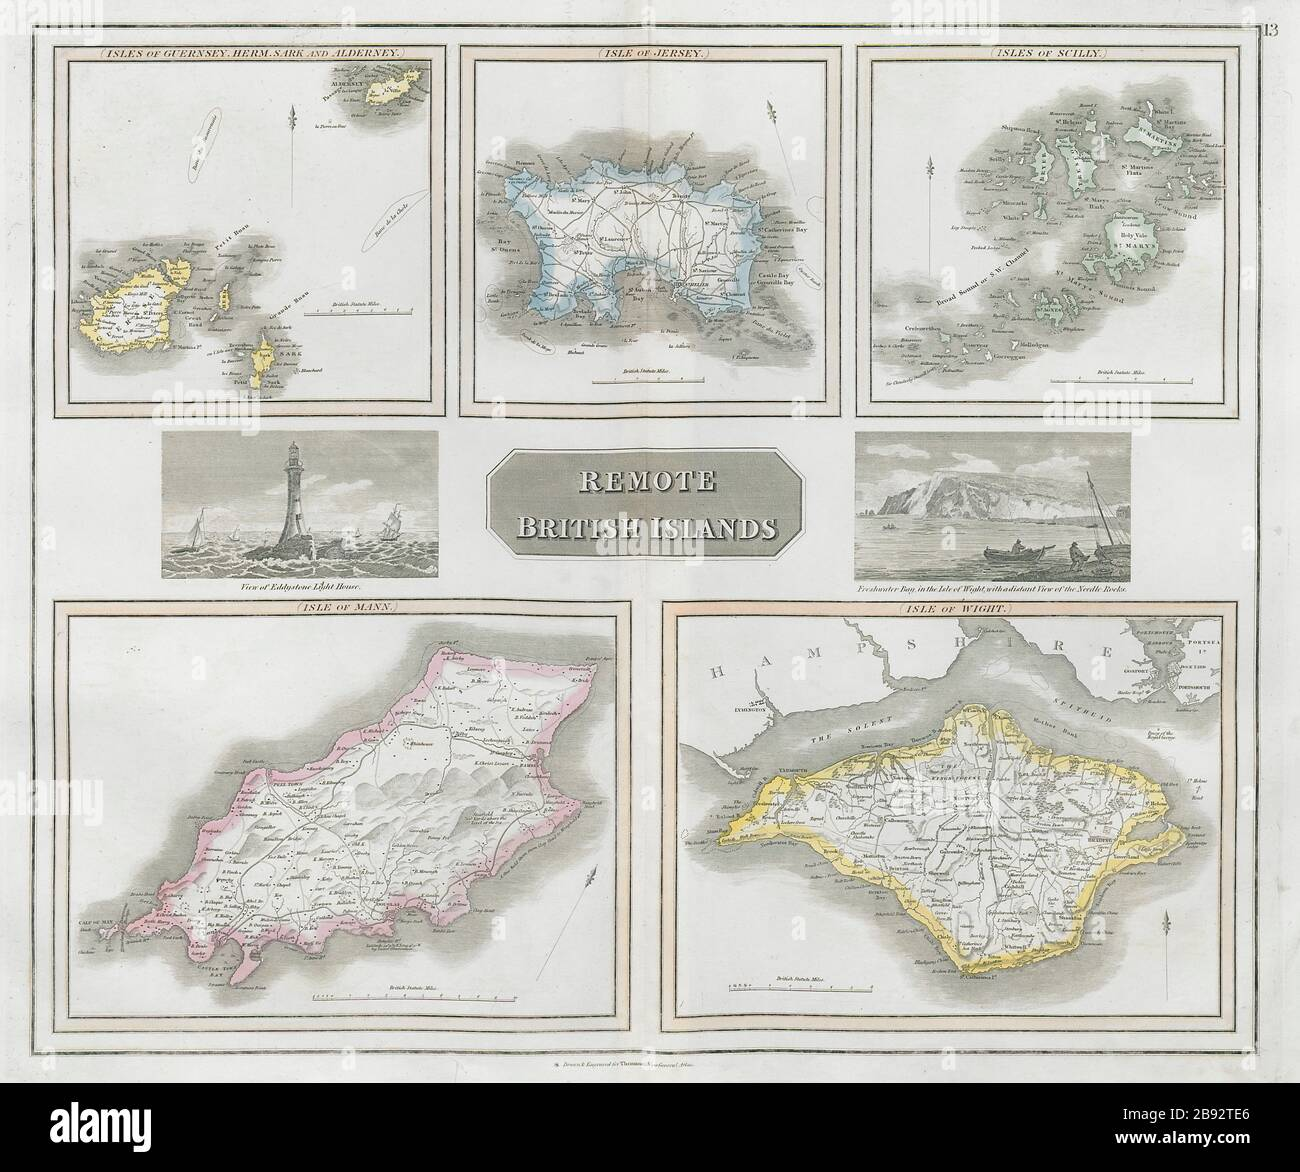 Jersey etc Wight Man Old vintage repro map British Islands by Thomson 1817